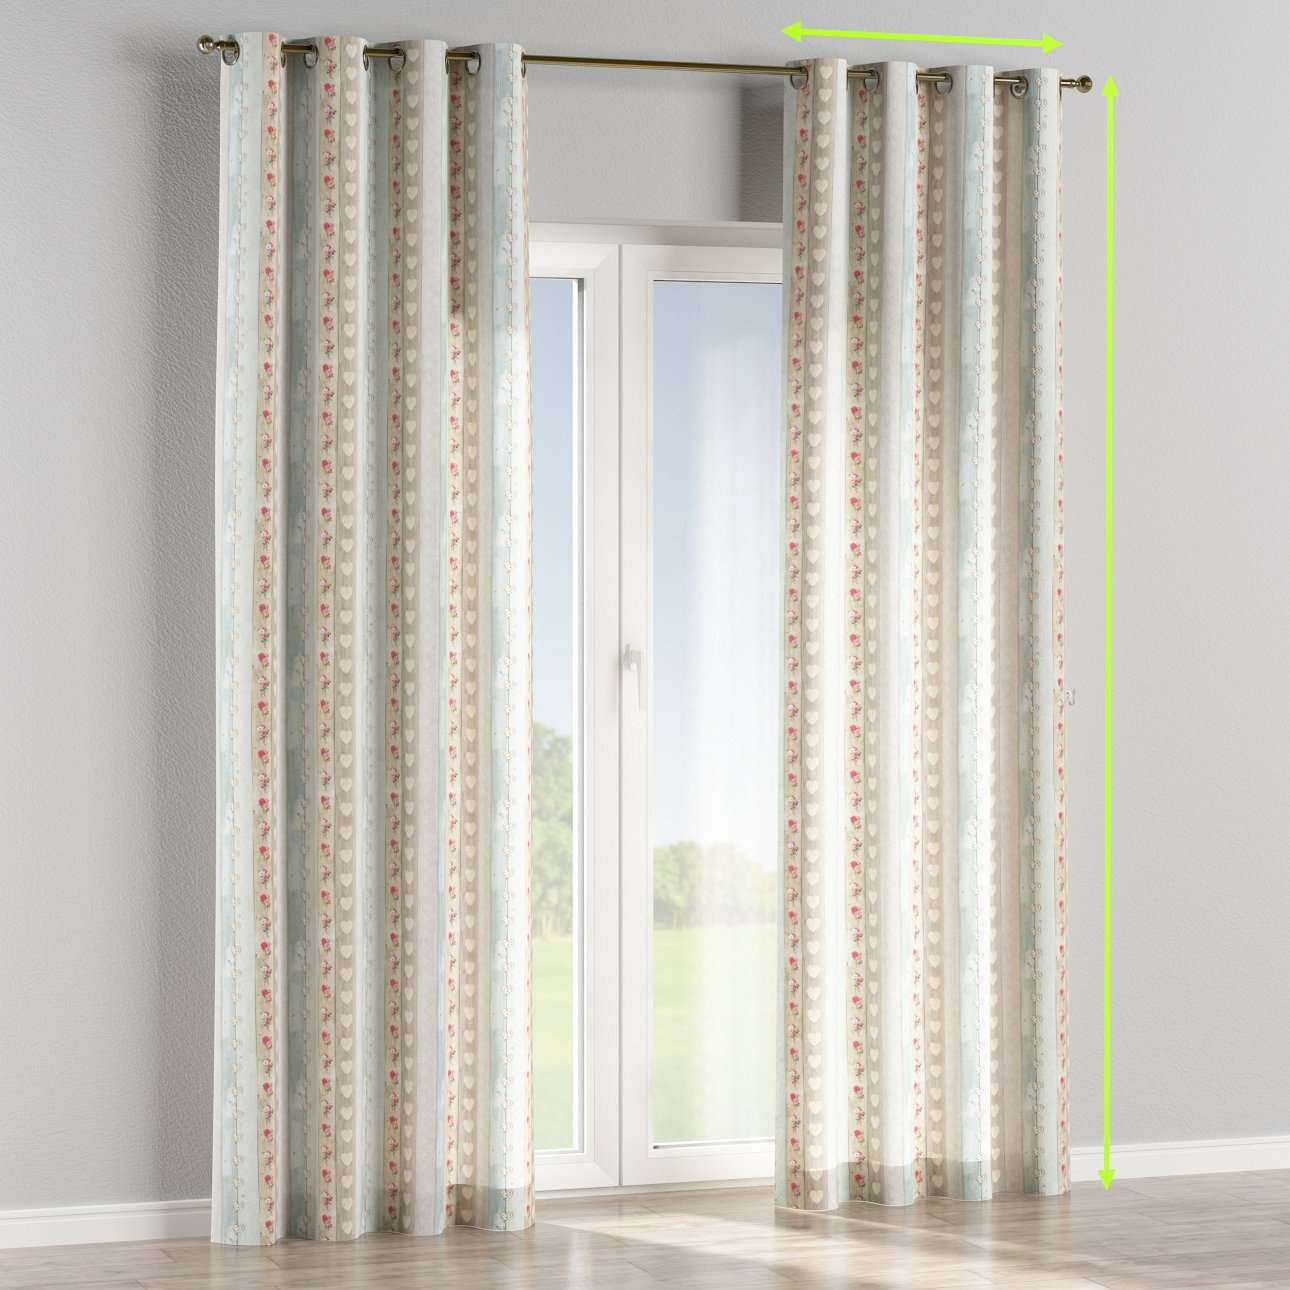 Eyelet lined curtains in collection Ashley, fabric: 140-20